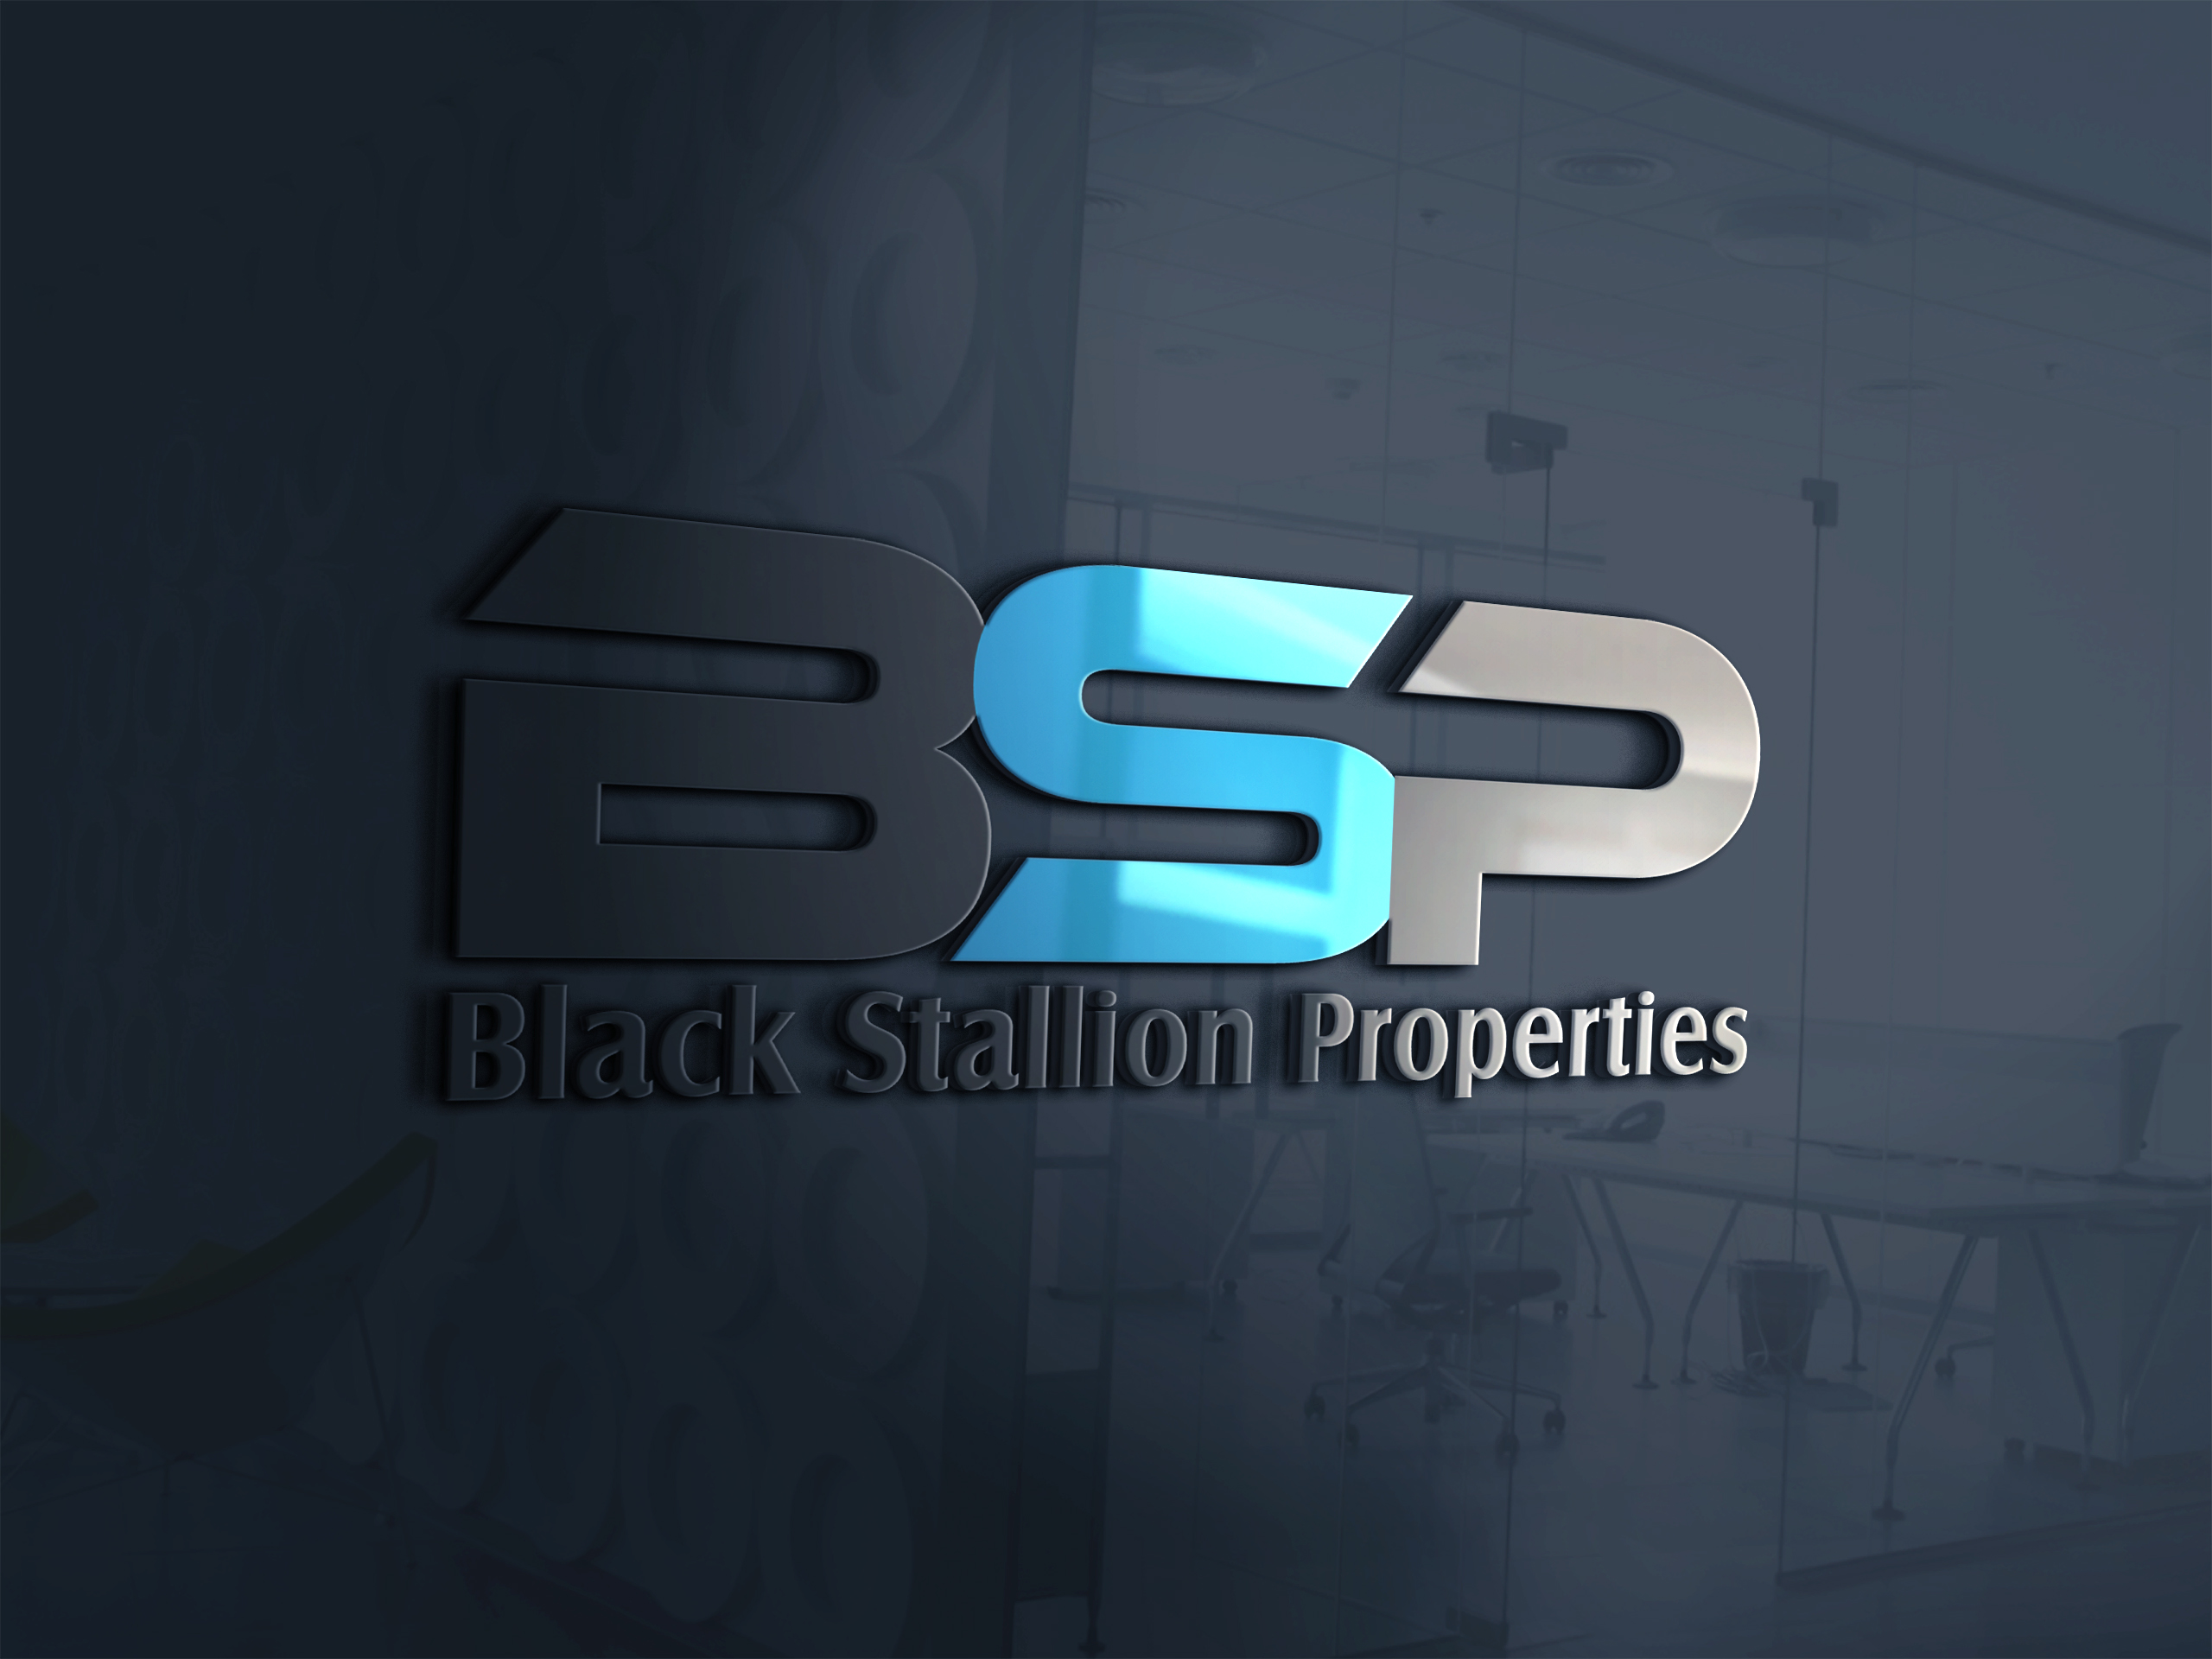 I Will Design Premium Quality Any Types Of Logo Within 24 Hours